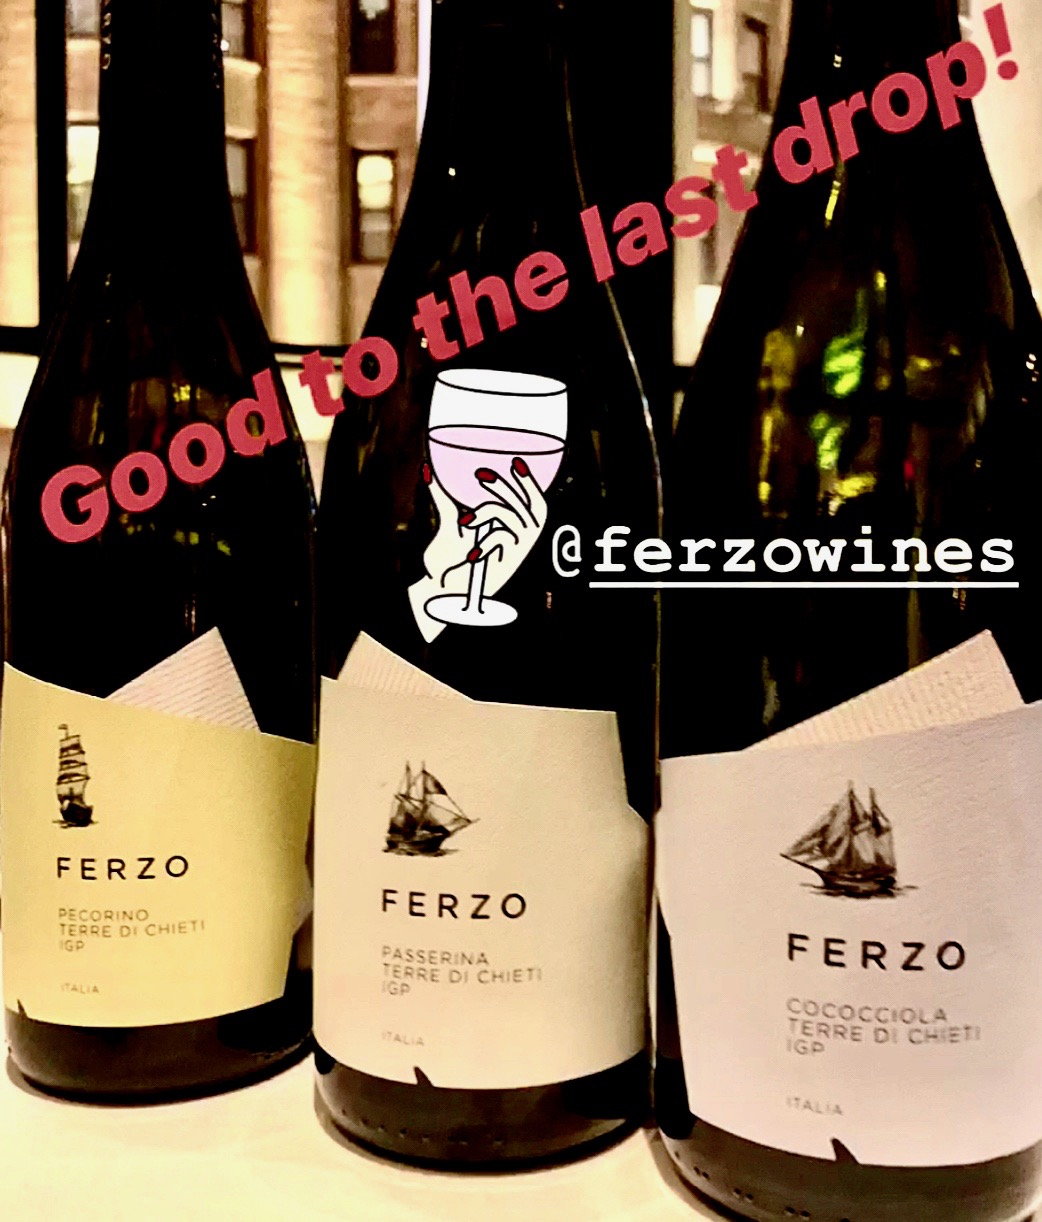 The white wines of Ferzo, as seen on Instagram. Follow @nycrestaurants for more fantastic food & wine!